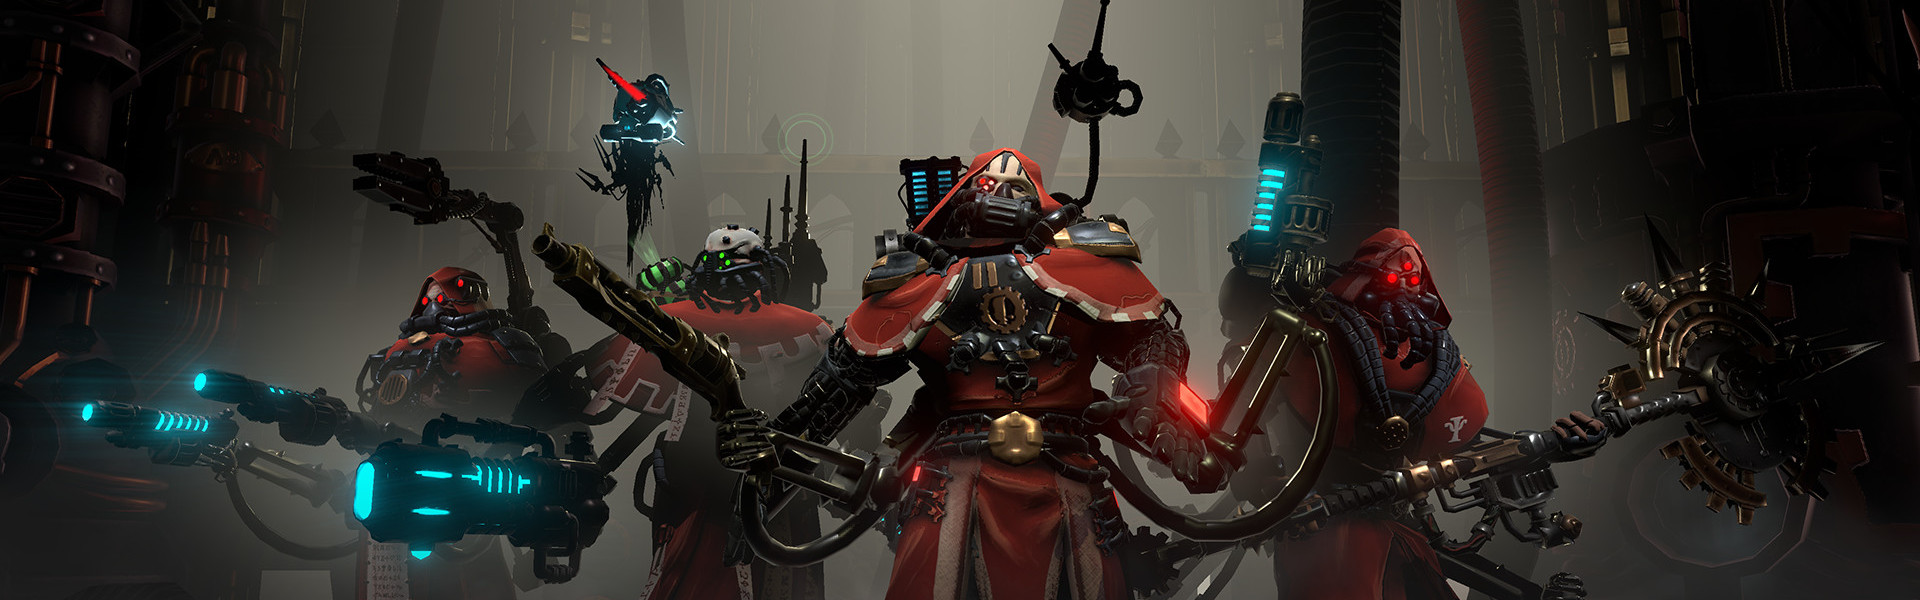 Warhammer 40,000: Mechanicus Steam Key EMEA / NORTH AMERICA